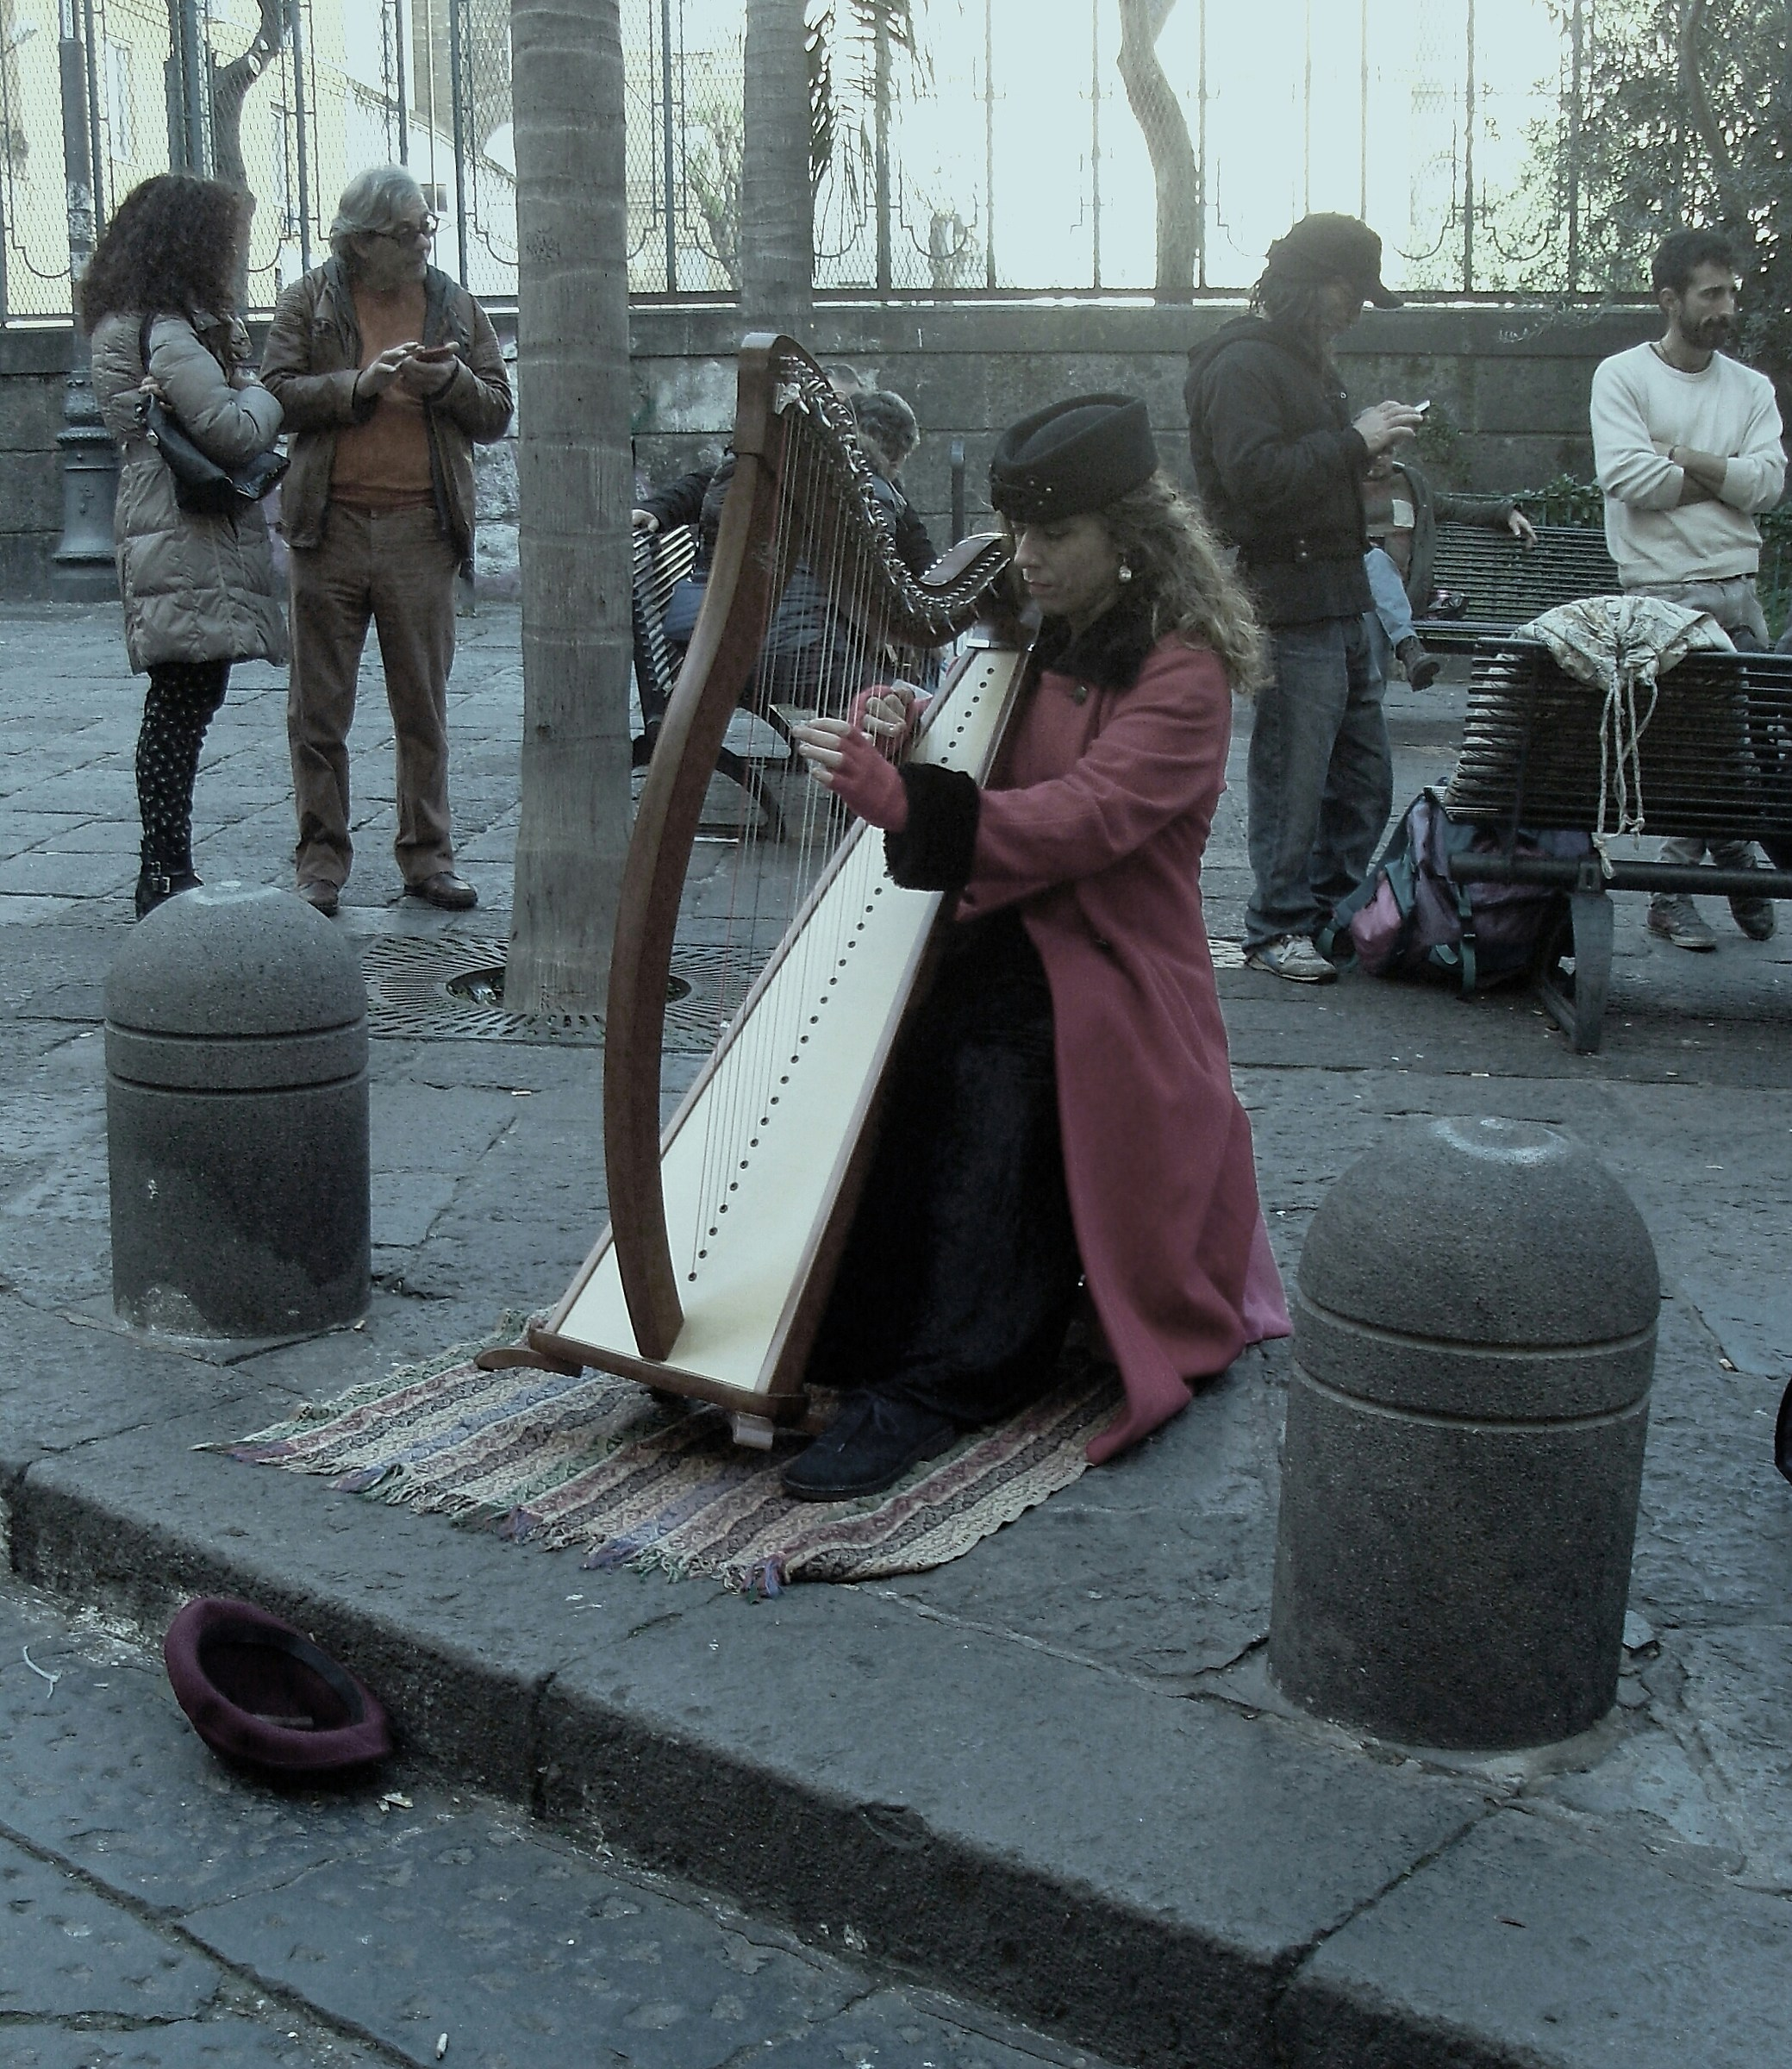 Buskers...